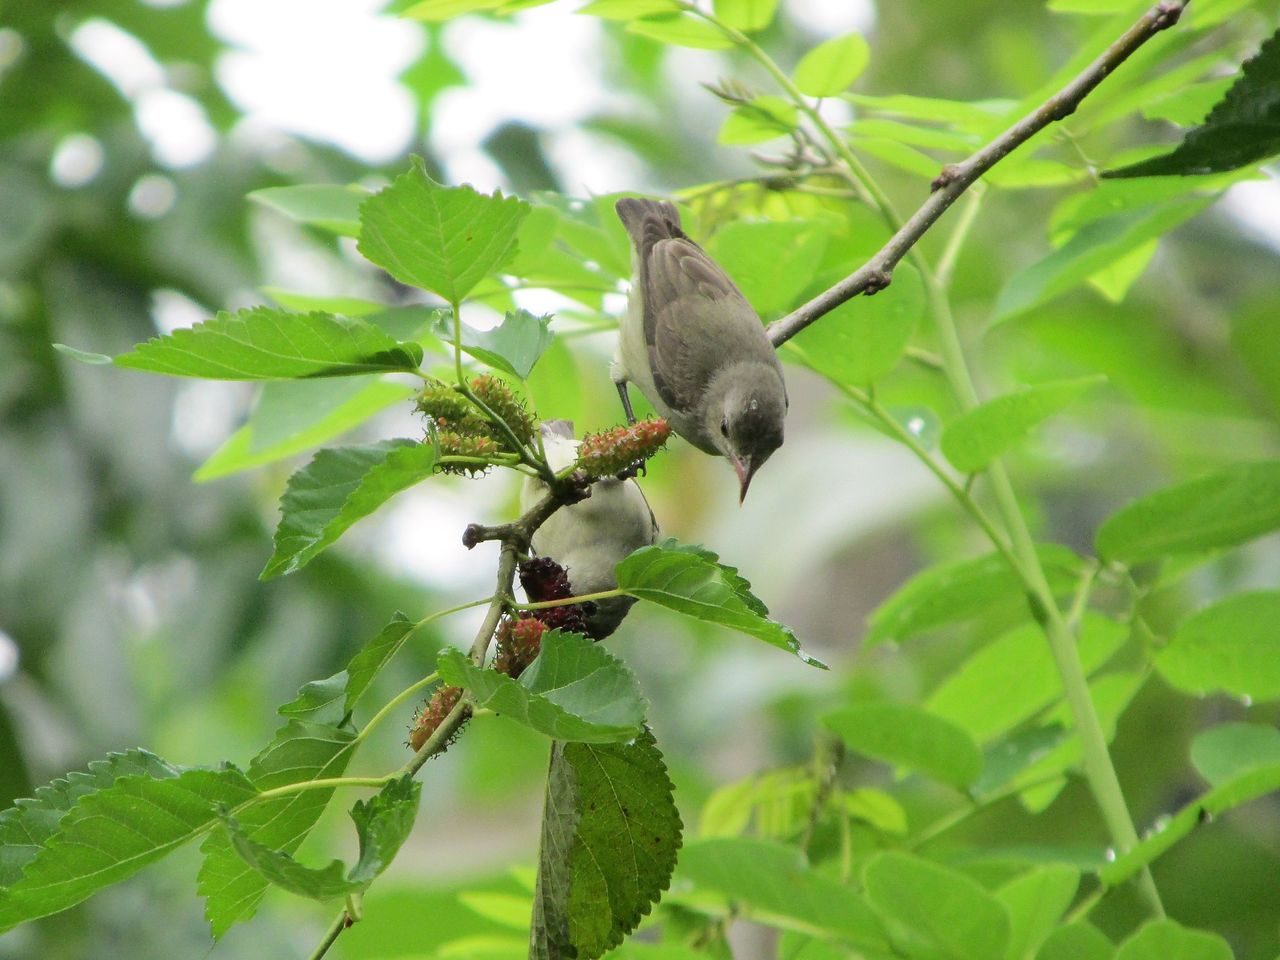 animal themes, leaf, animals in the wild, one animal, green color, bird, animal wildlife, growth, nature, no people, perching, focus on foreground, outdoors, day, branch, tree, sparrow, beauty in nature, close-up